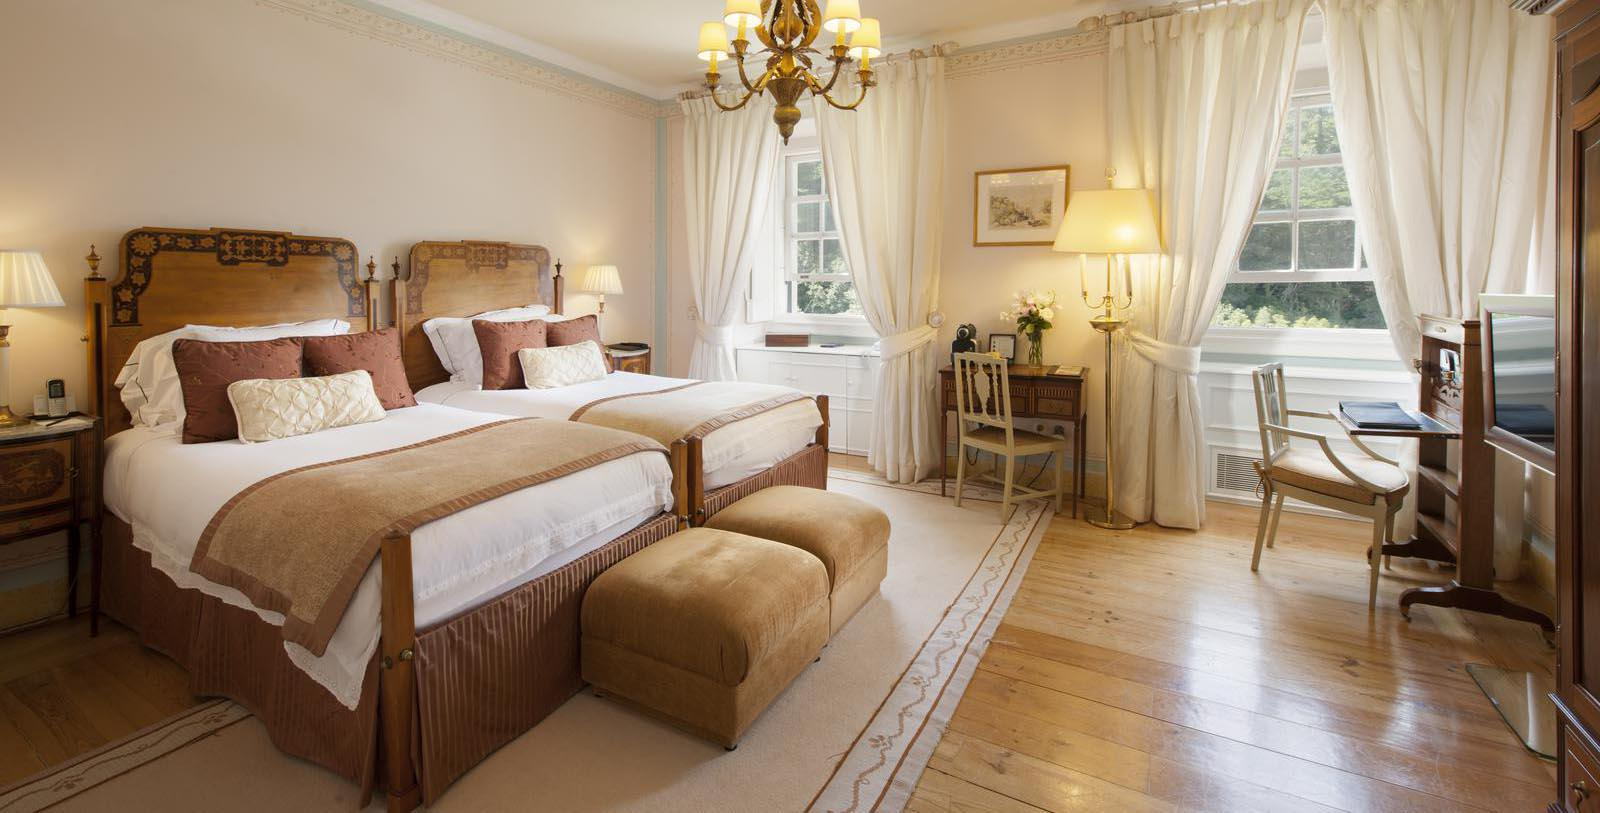 Image of Guestroom at Tivoli Palacio de Seteais, 1787, Member of Historic Hotels Worldwide, in Sintra, Portugal, Location Map